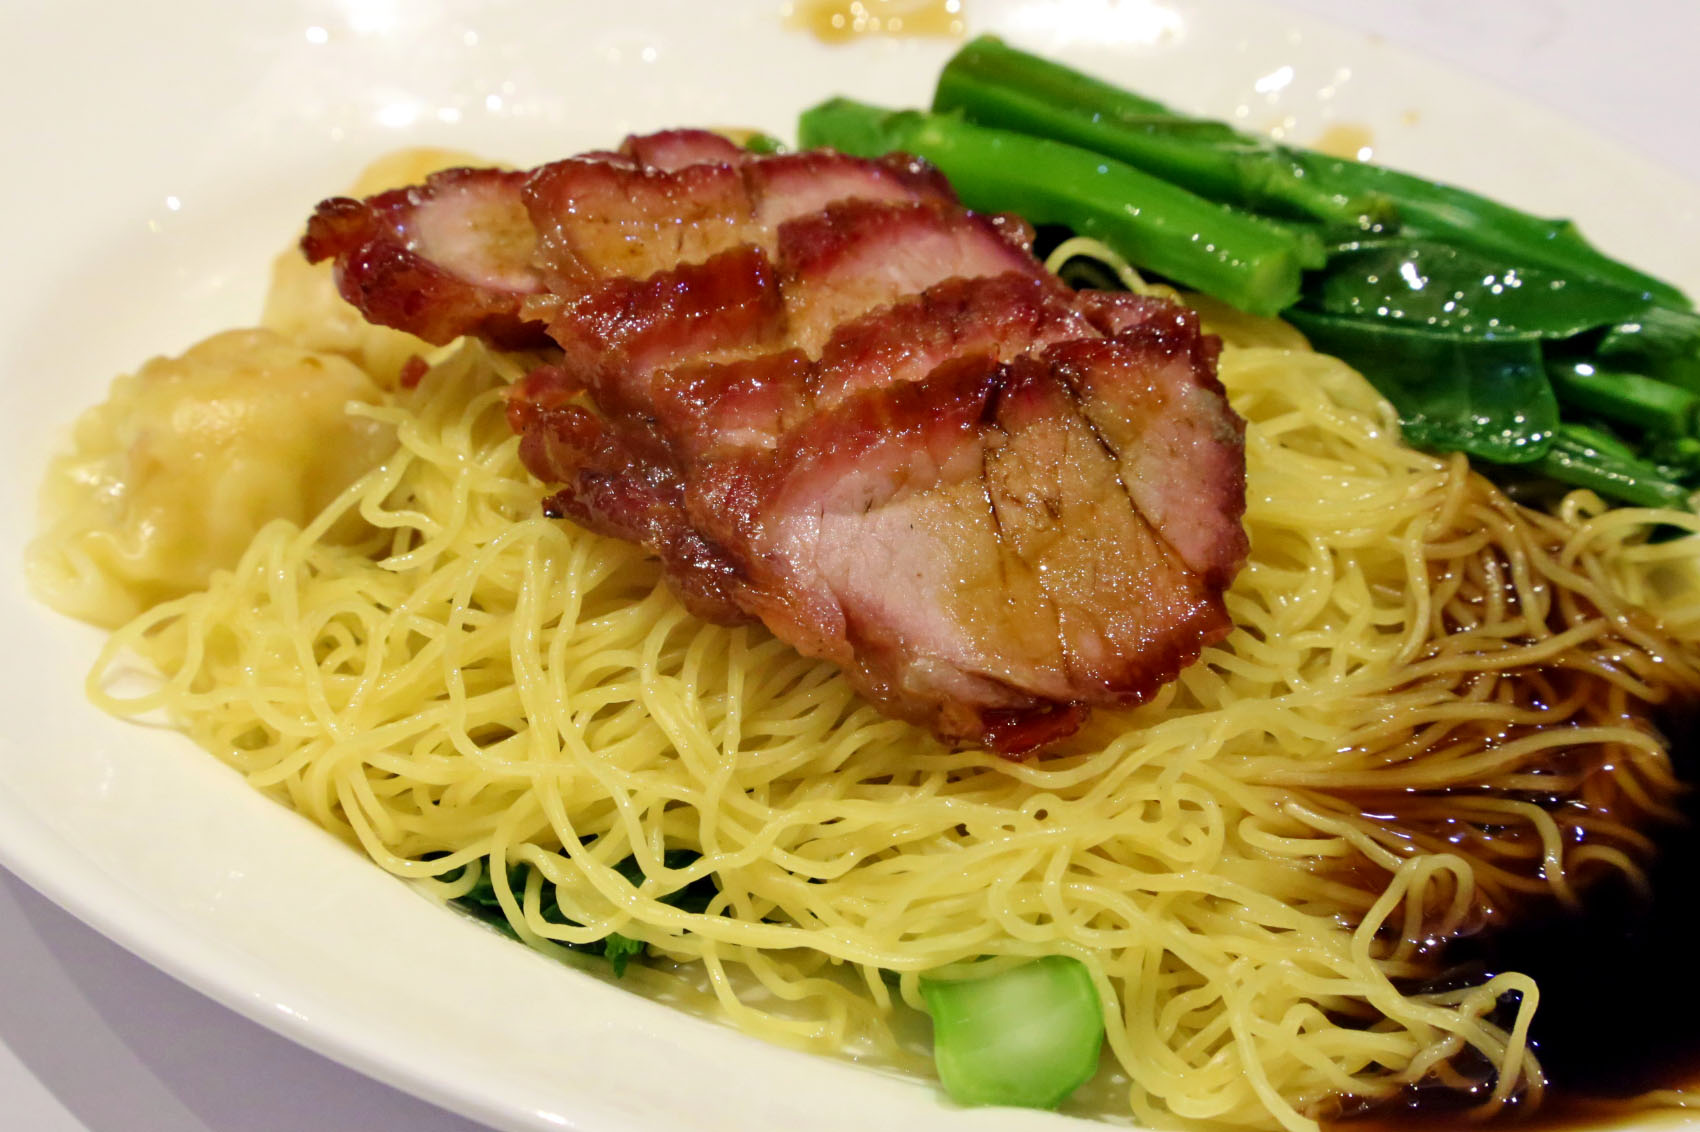 Noodle Place Restaurant - Authentic Hong Kong Style Food Now At Orchard Gateway